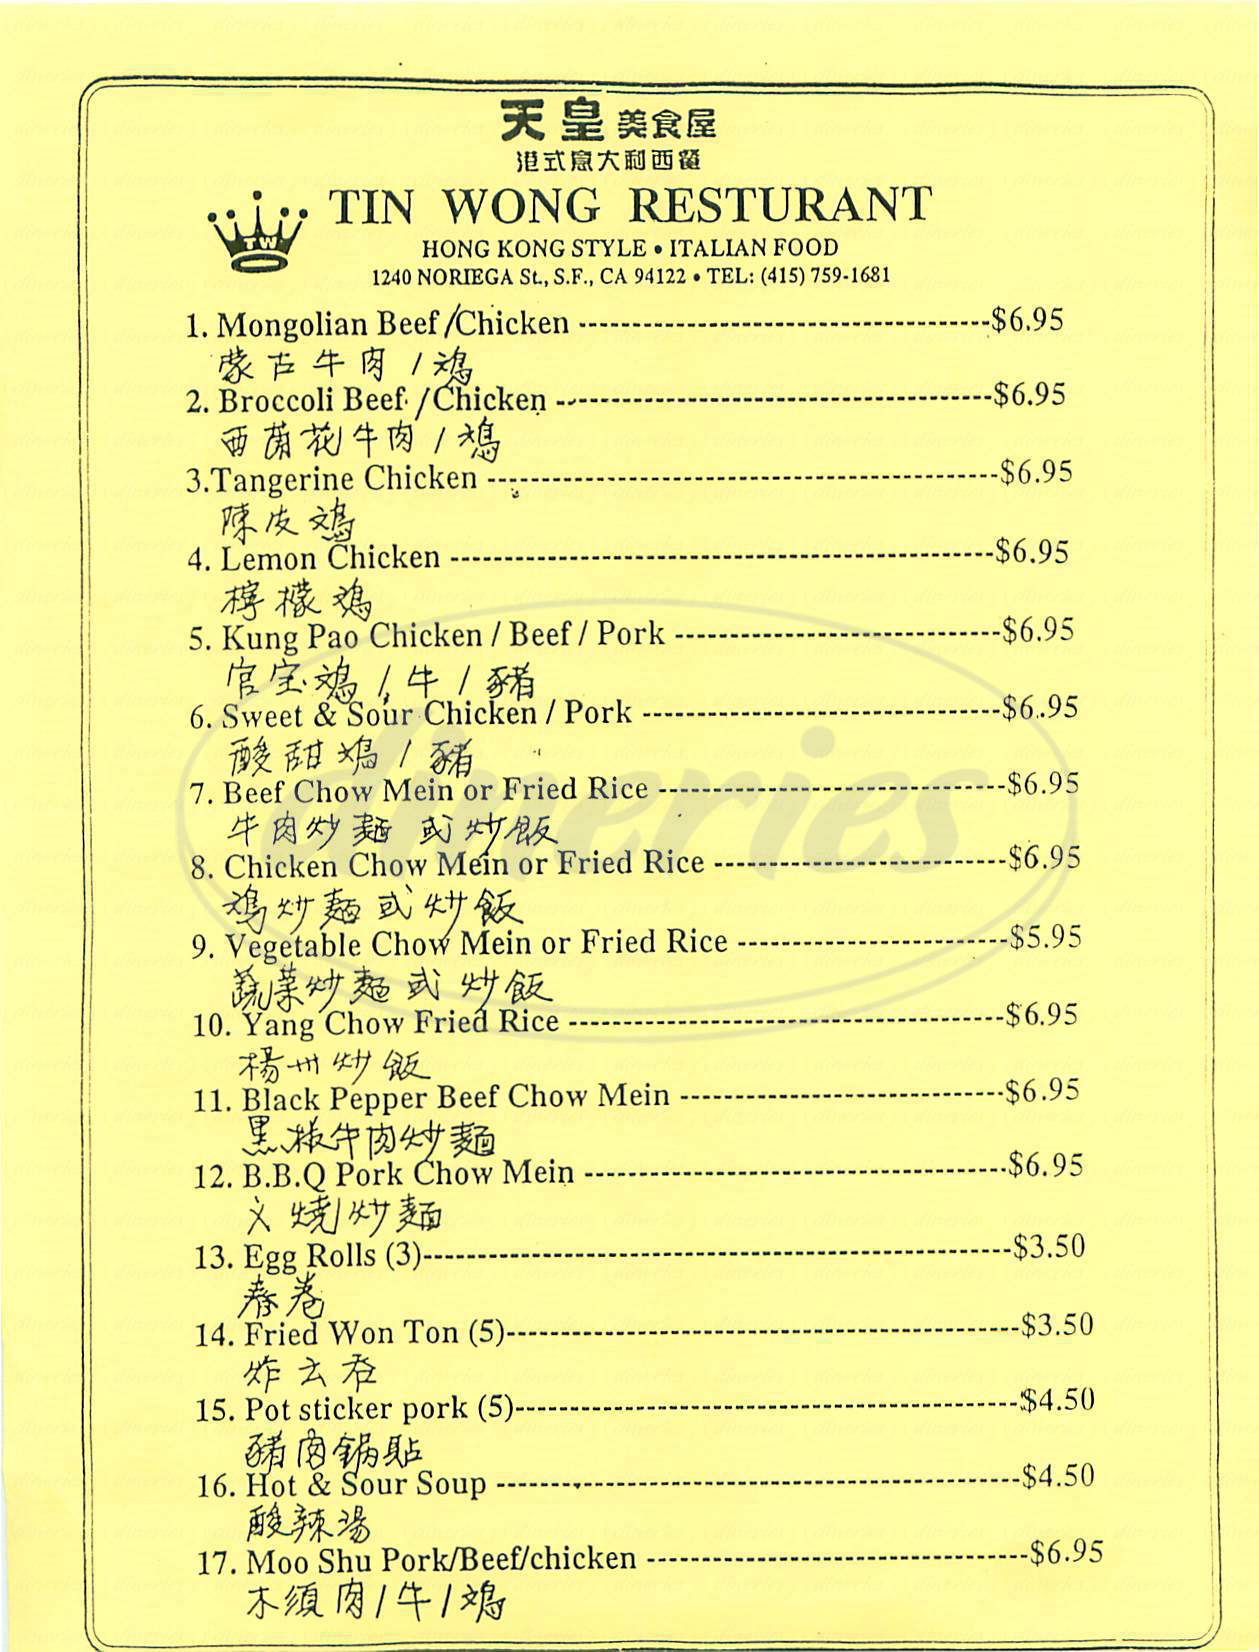 menu for Tin Wong